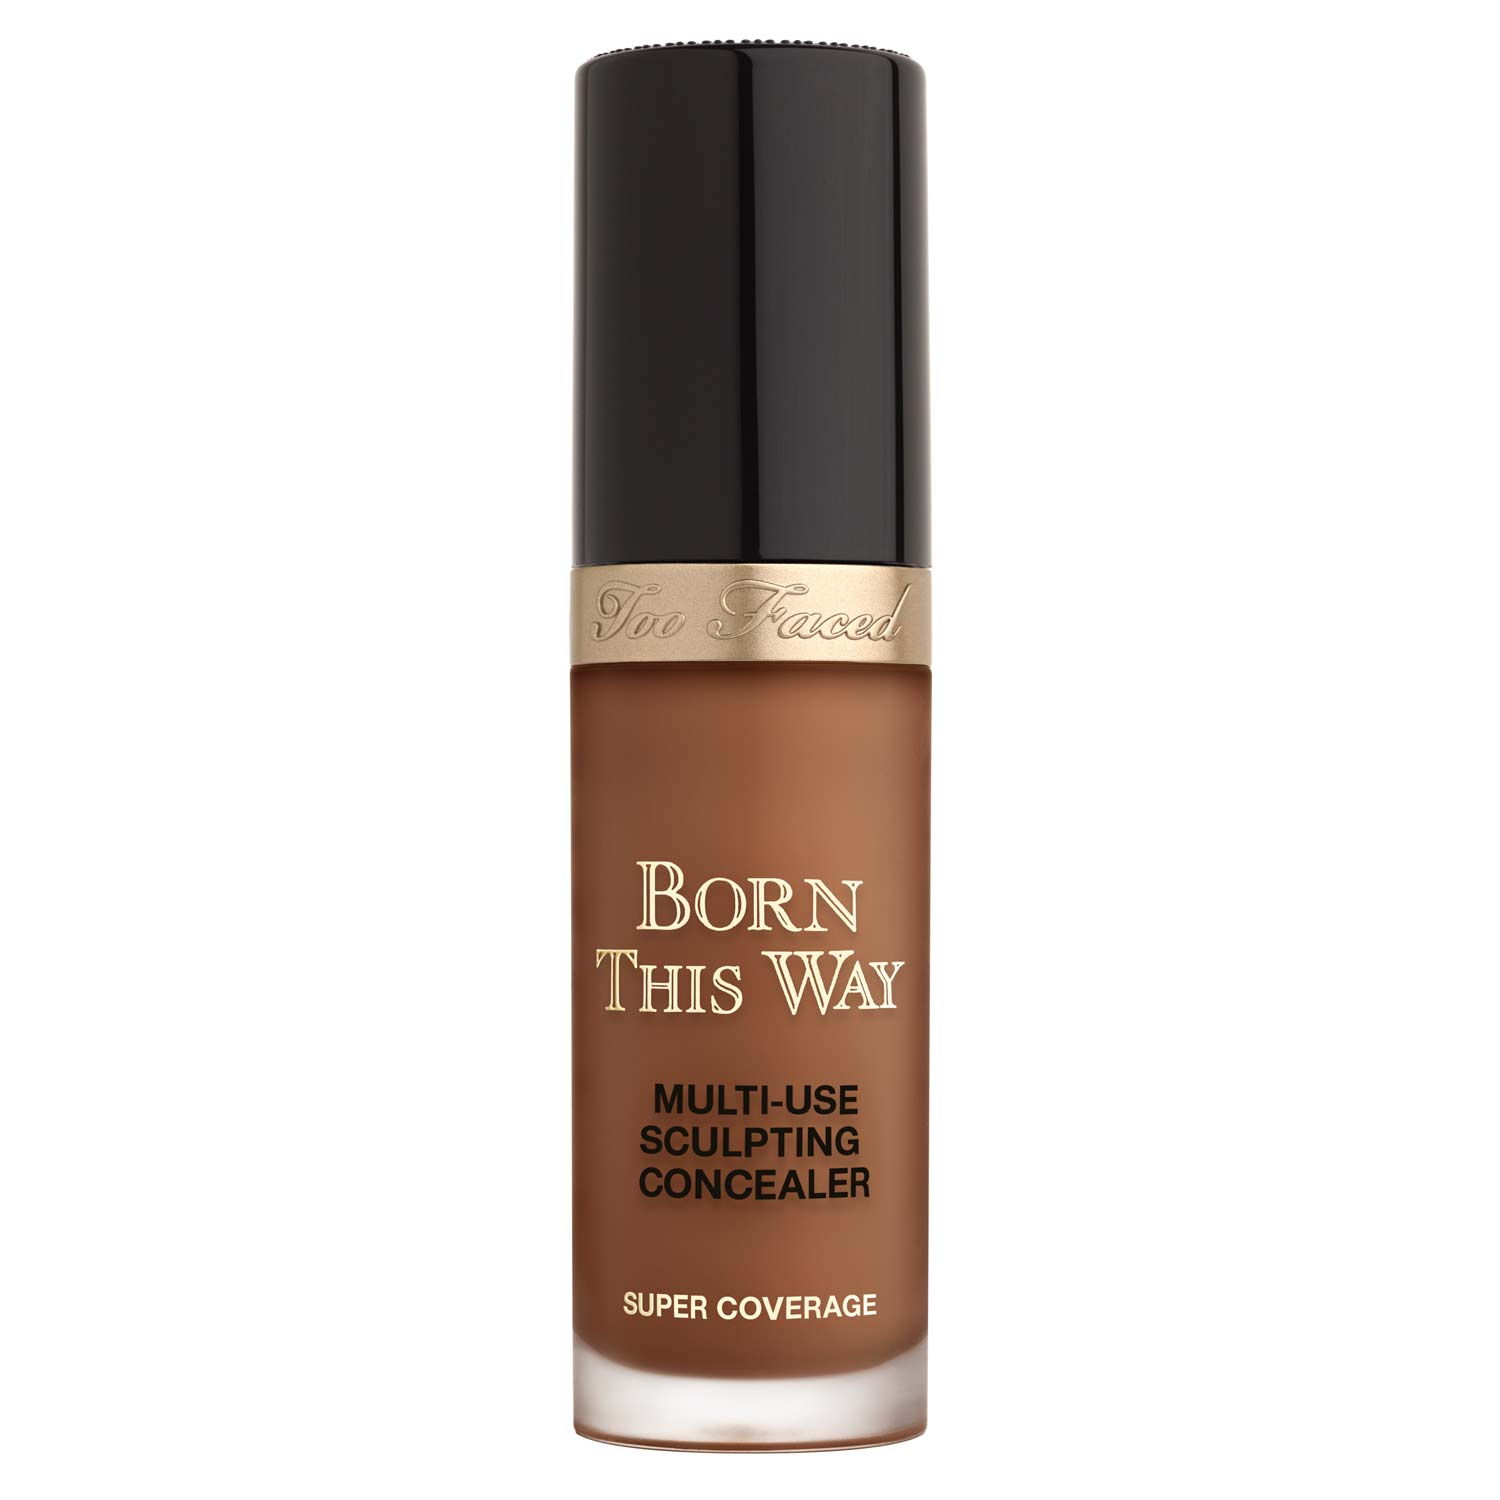 Too Faced Born This Way, £29